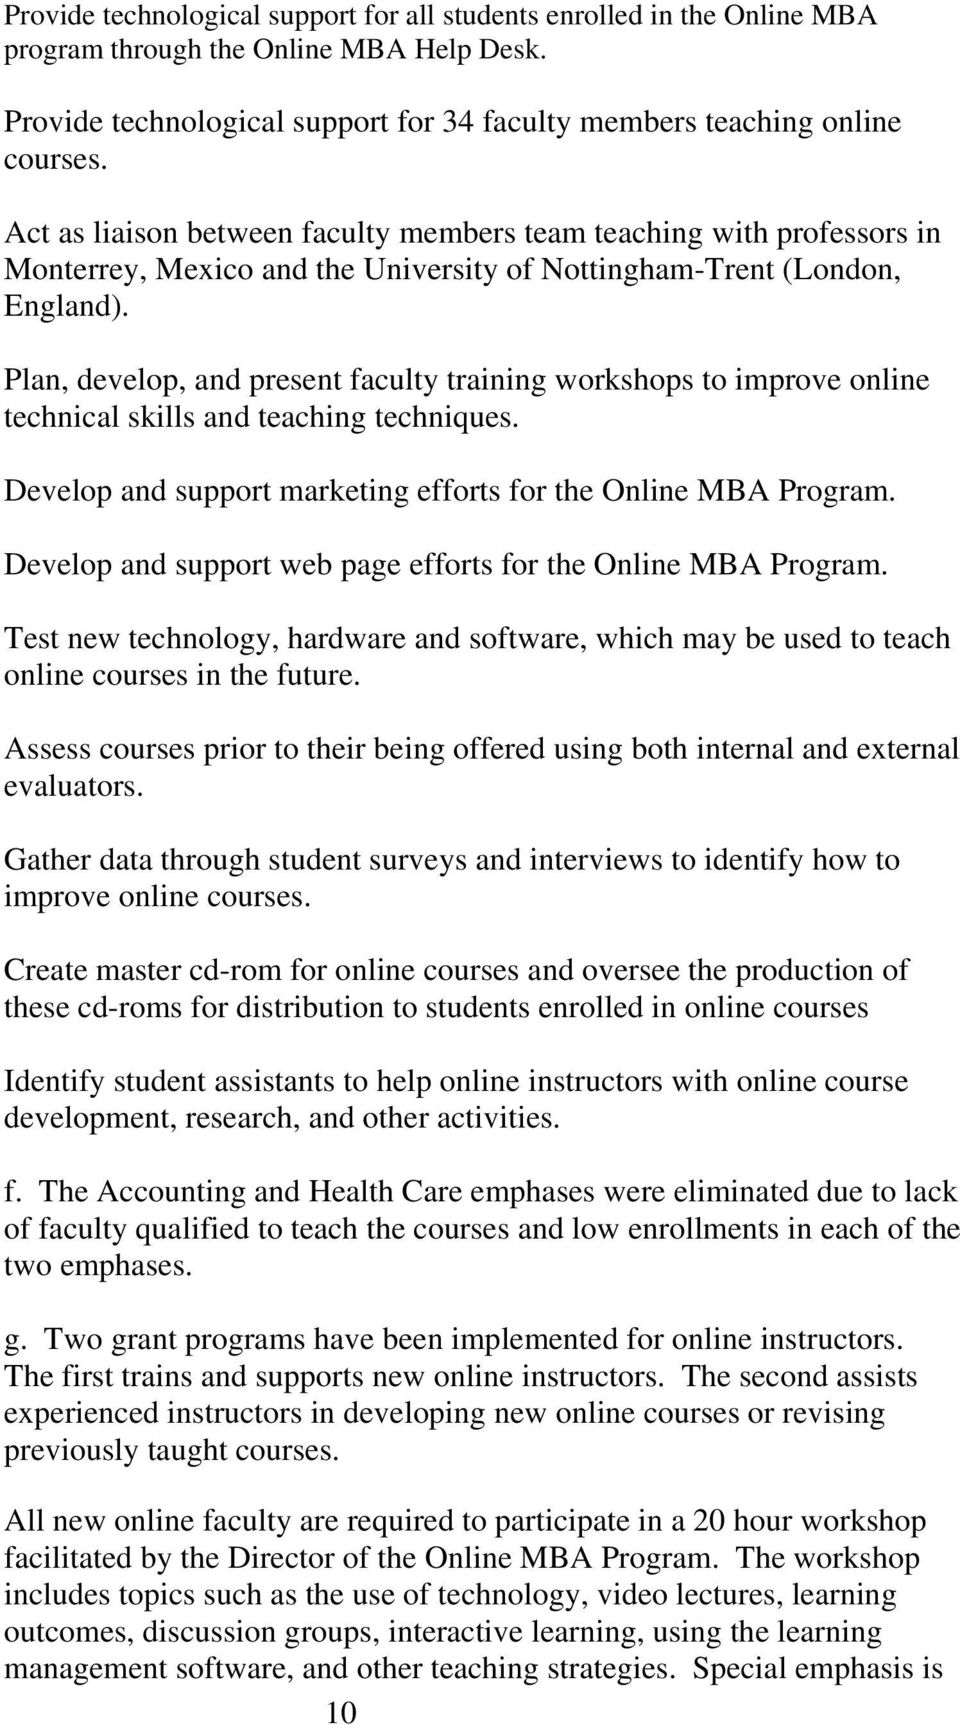 Plan, develop, and present faculty training workshops to improve online technical skills and teaching techniques. Develop and support marketing efforts for the Online MBA Program.